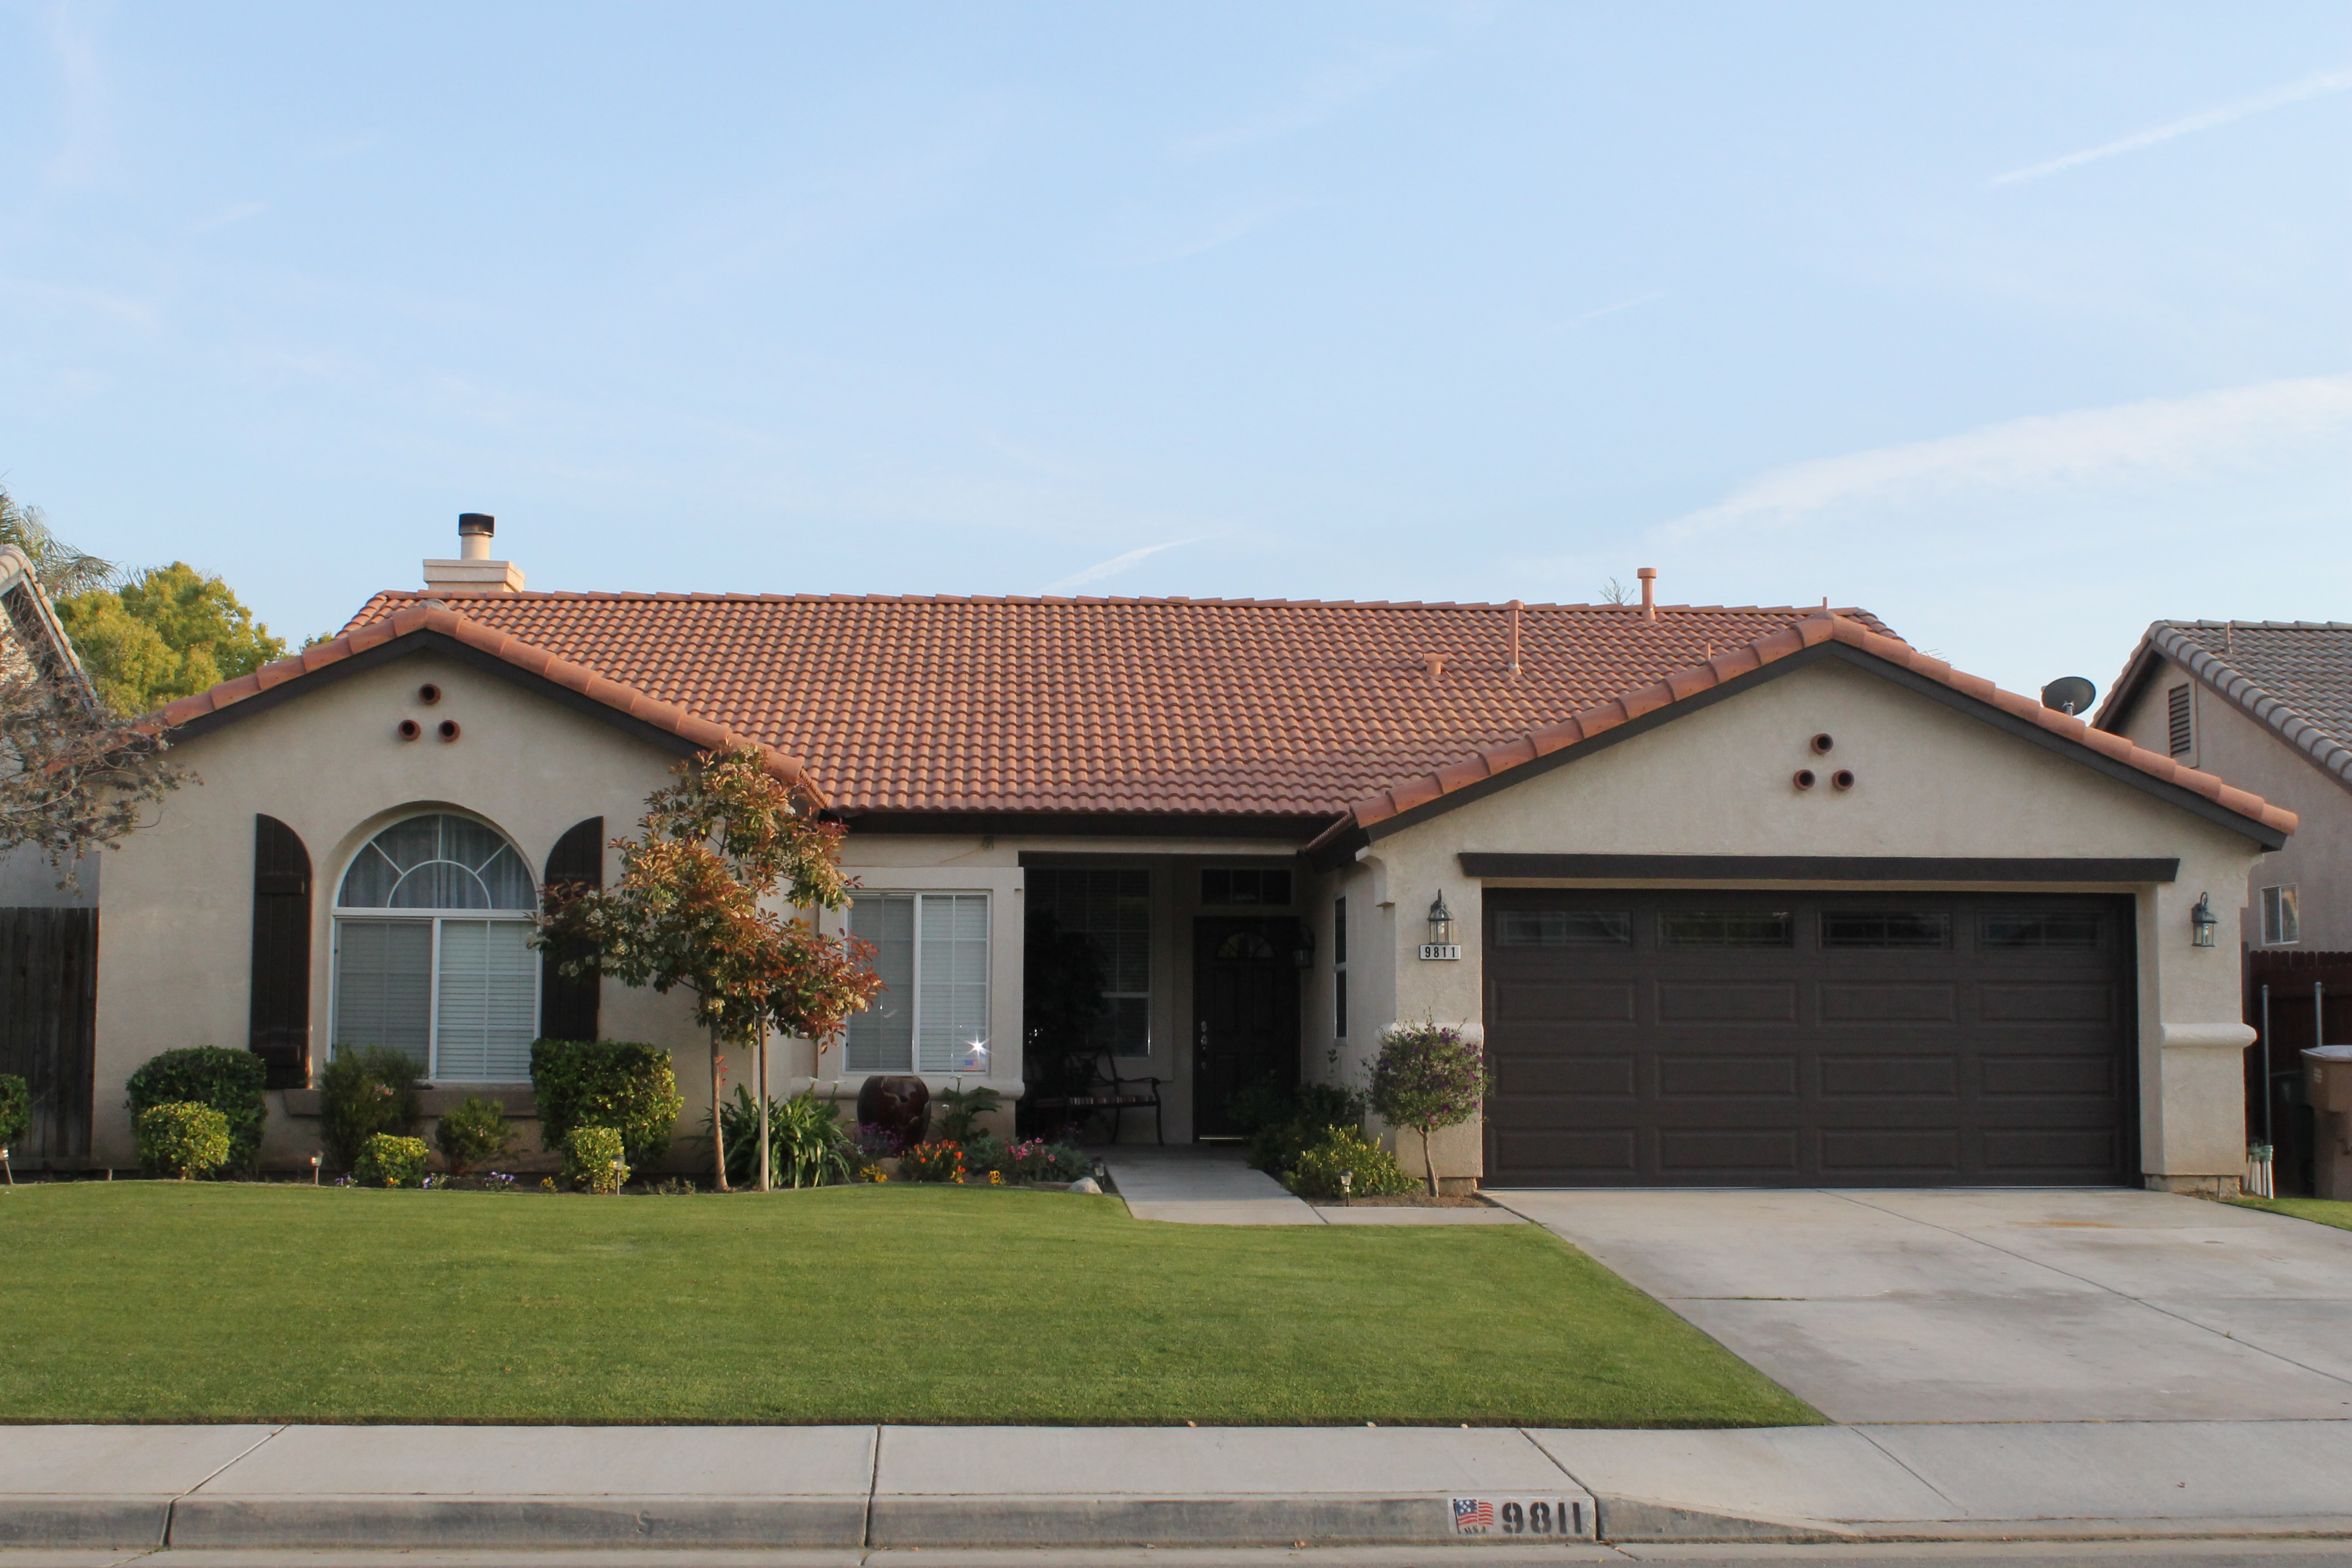 northwest bakersfield homes for rent trend home design bakersfield real estate agents free home design ideas images